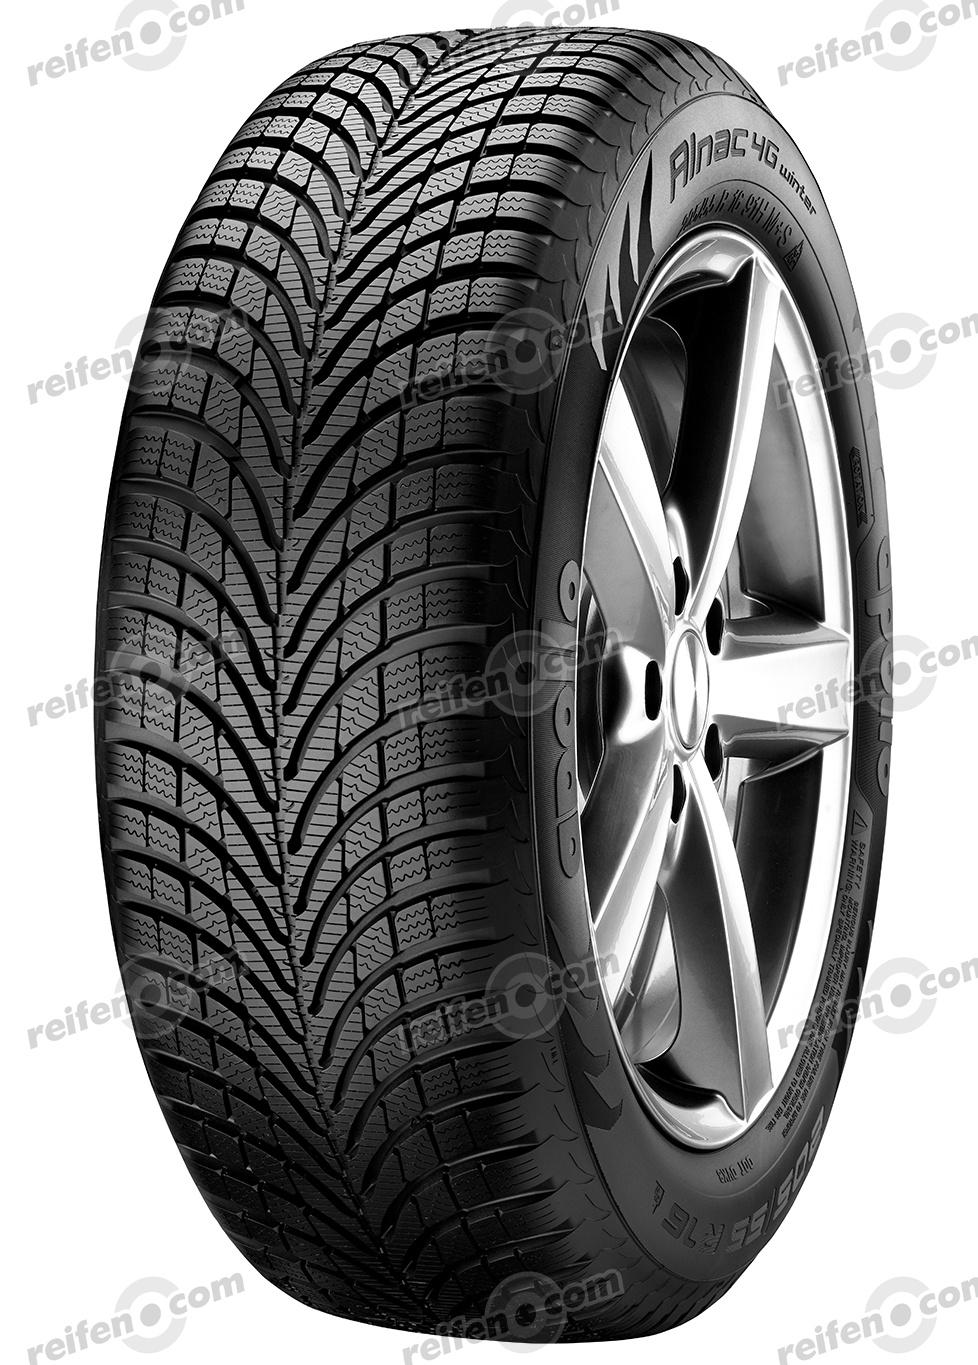 195/65 R15 91H Alnac 4 G Winter  Alnac 4 G Winter